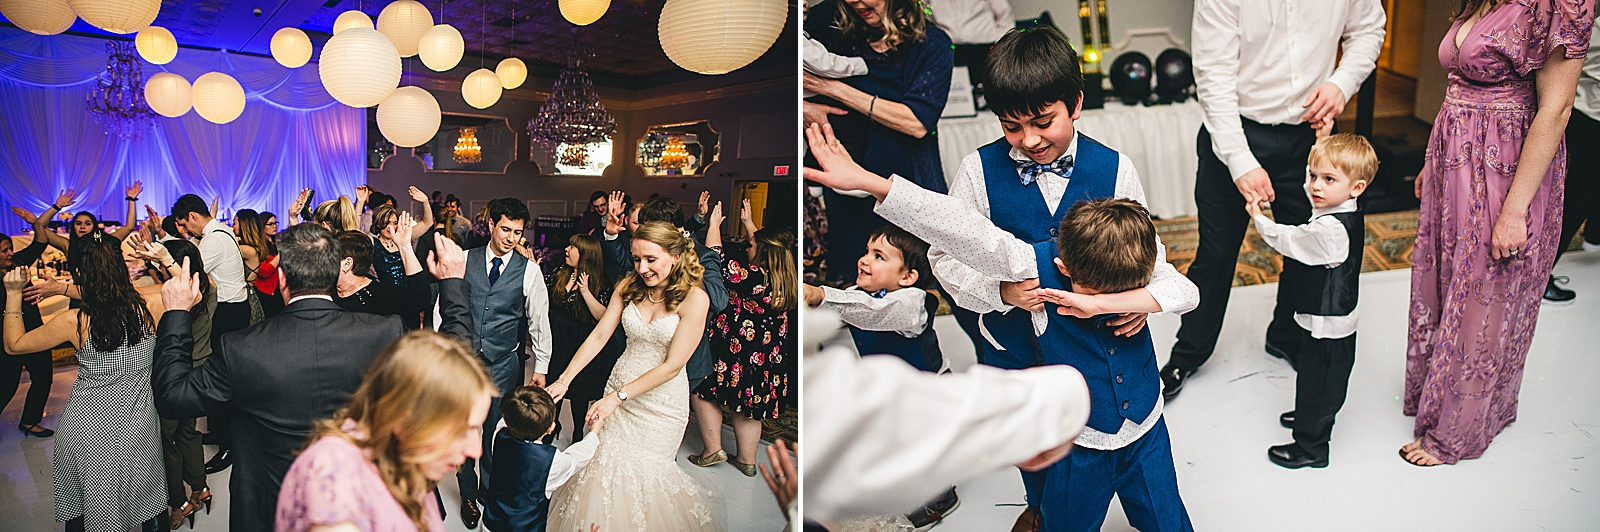 40 party wedding photos - Oakbrook Wedding Photos at Drury Lane // Marina + Joe